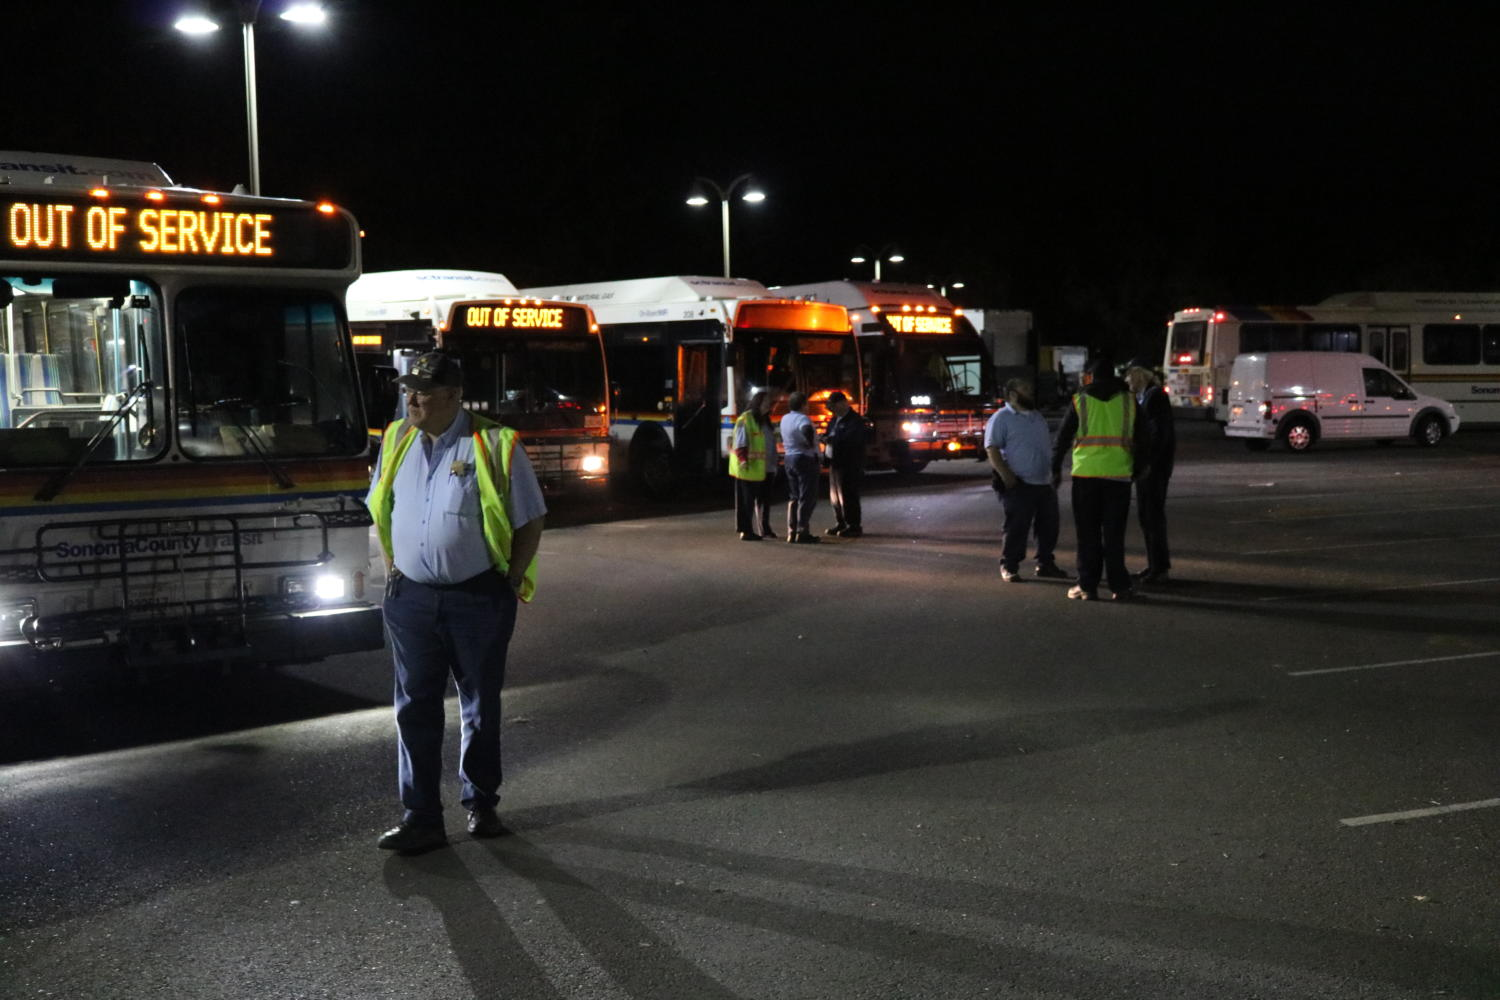 Evacuation buses roll into Sonoma State University as precautionary measures for students.